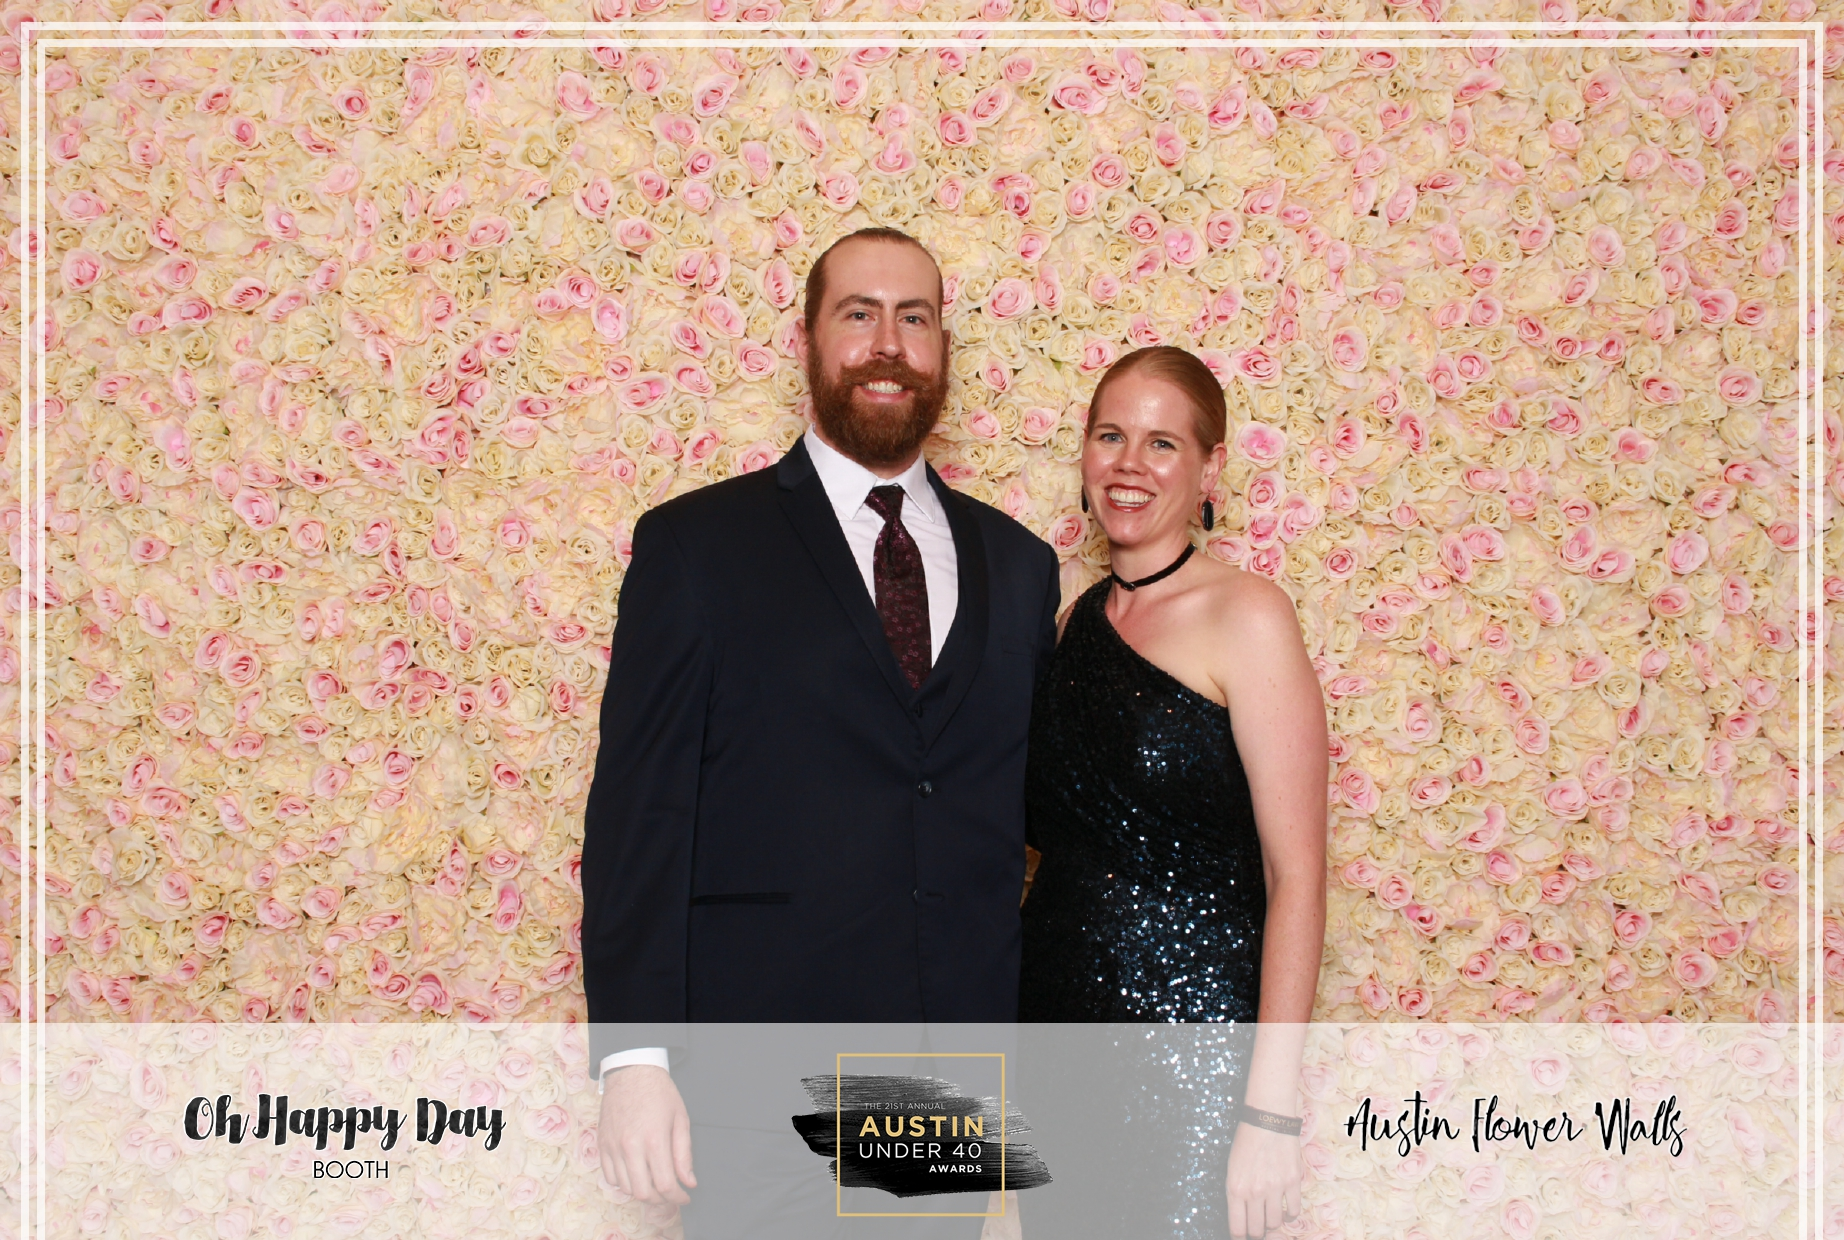 Oh Happy Day Booth - Austin Under 40-97.jpg